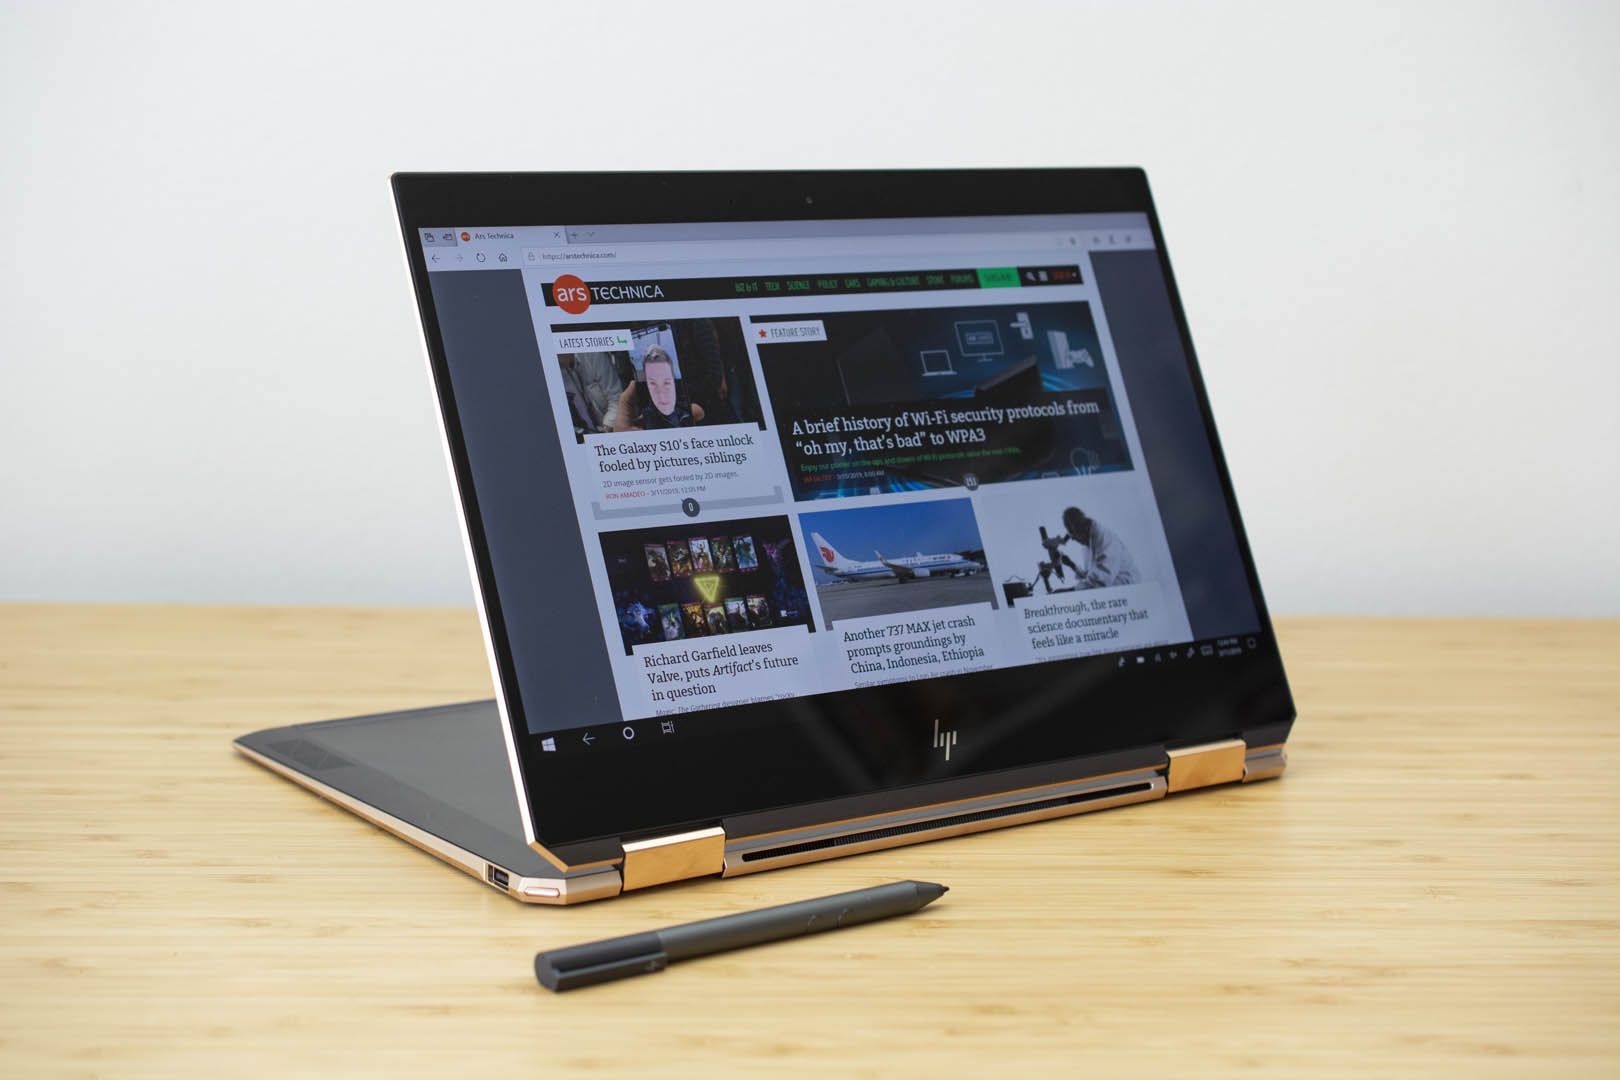 The HP Spectre x360 13.